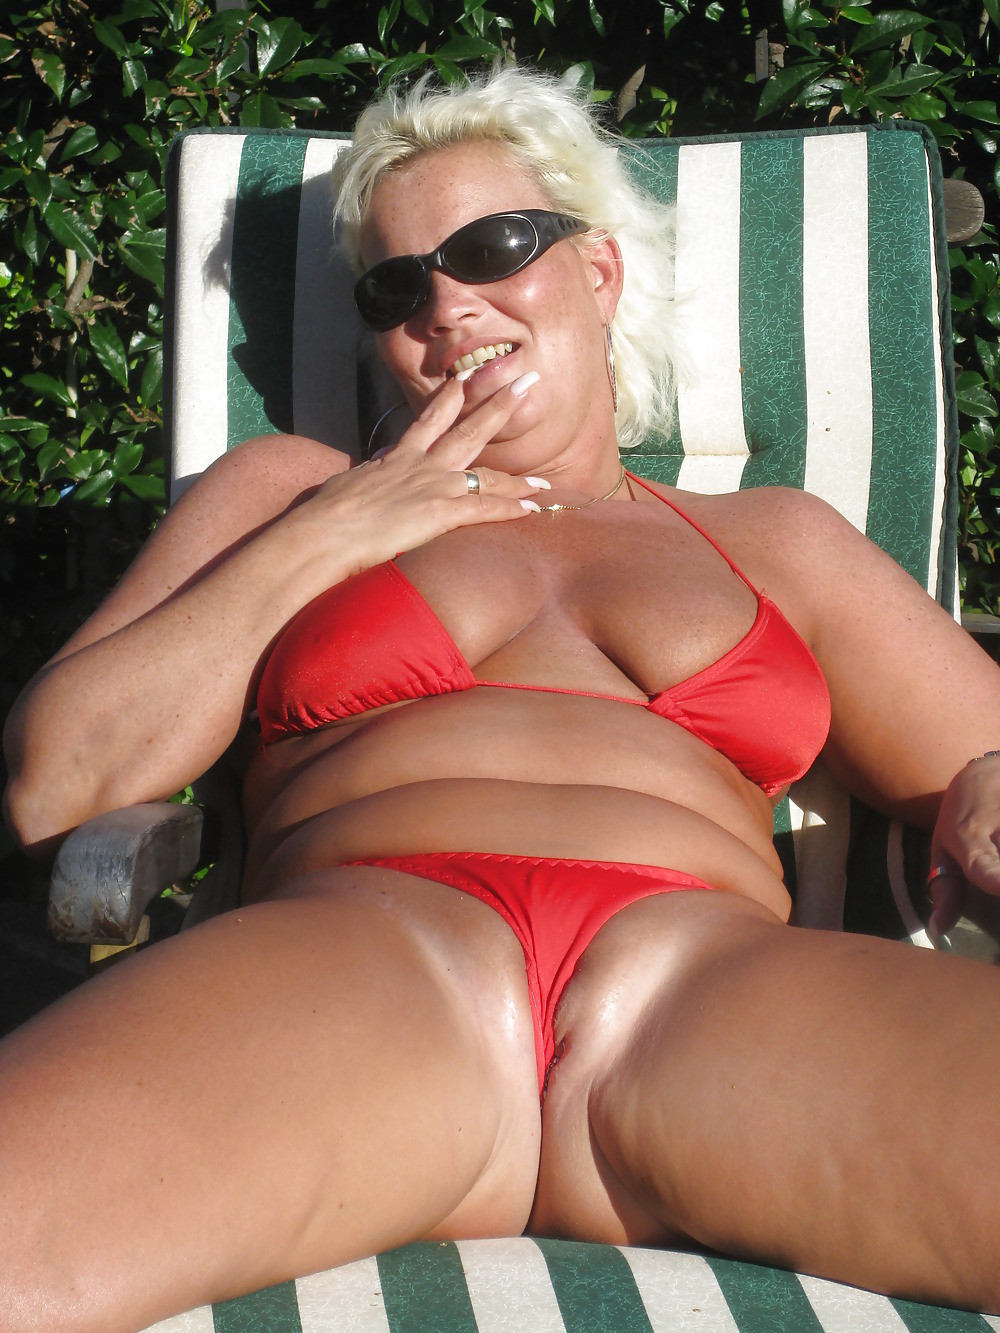 chubby gmilf with her pussy out in a reavealing bikini